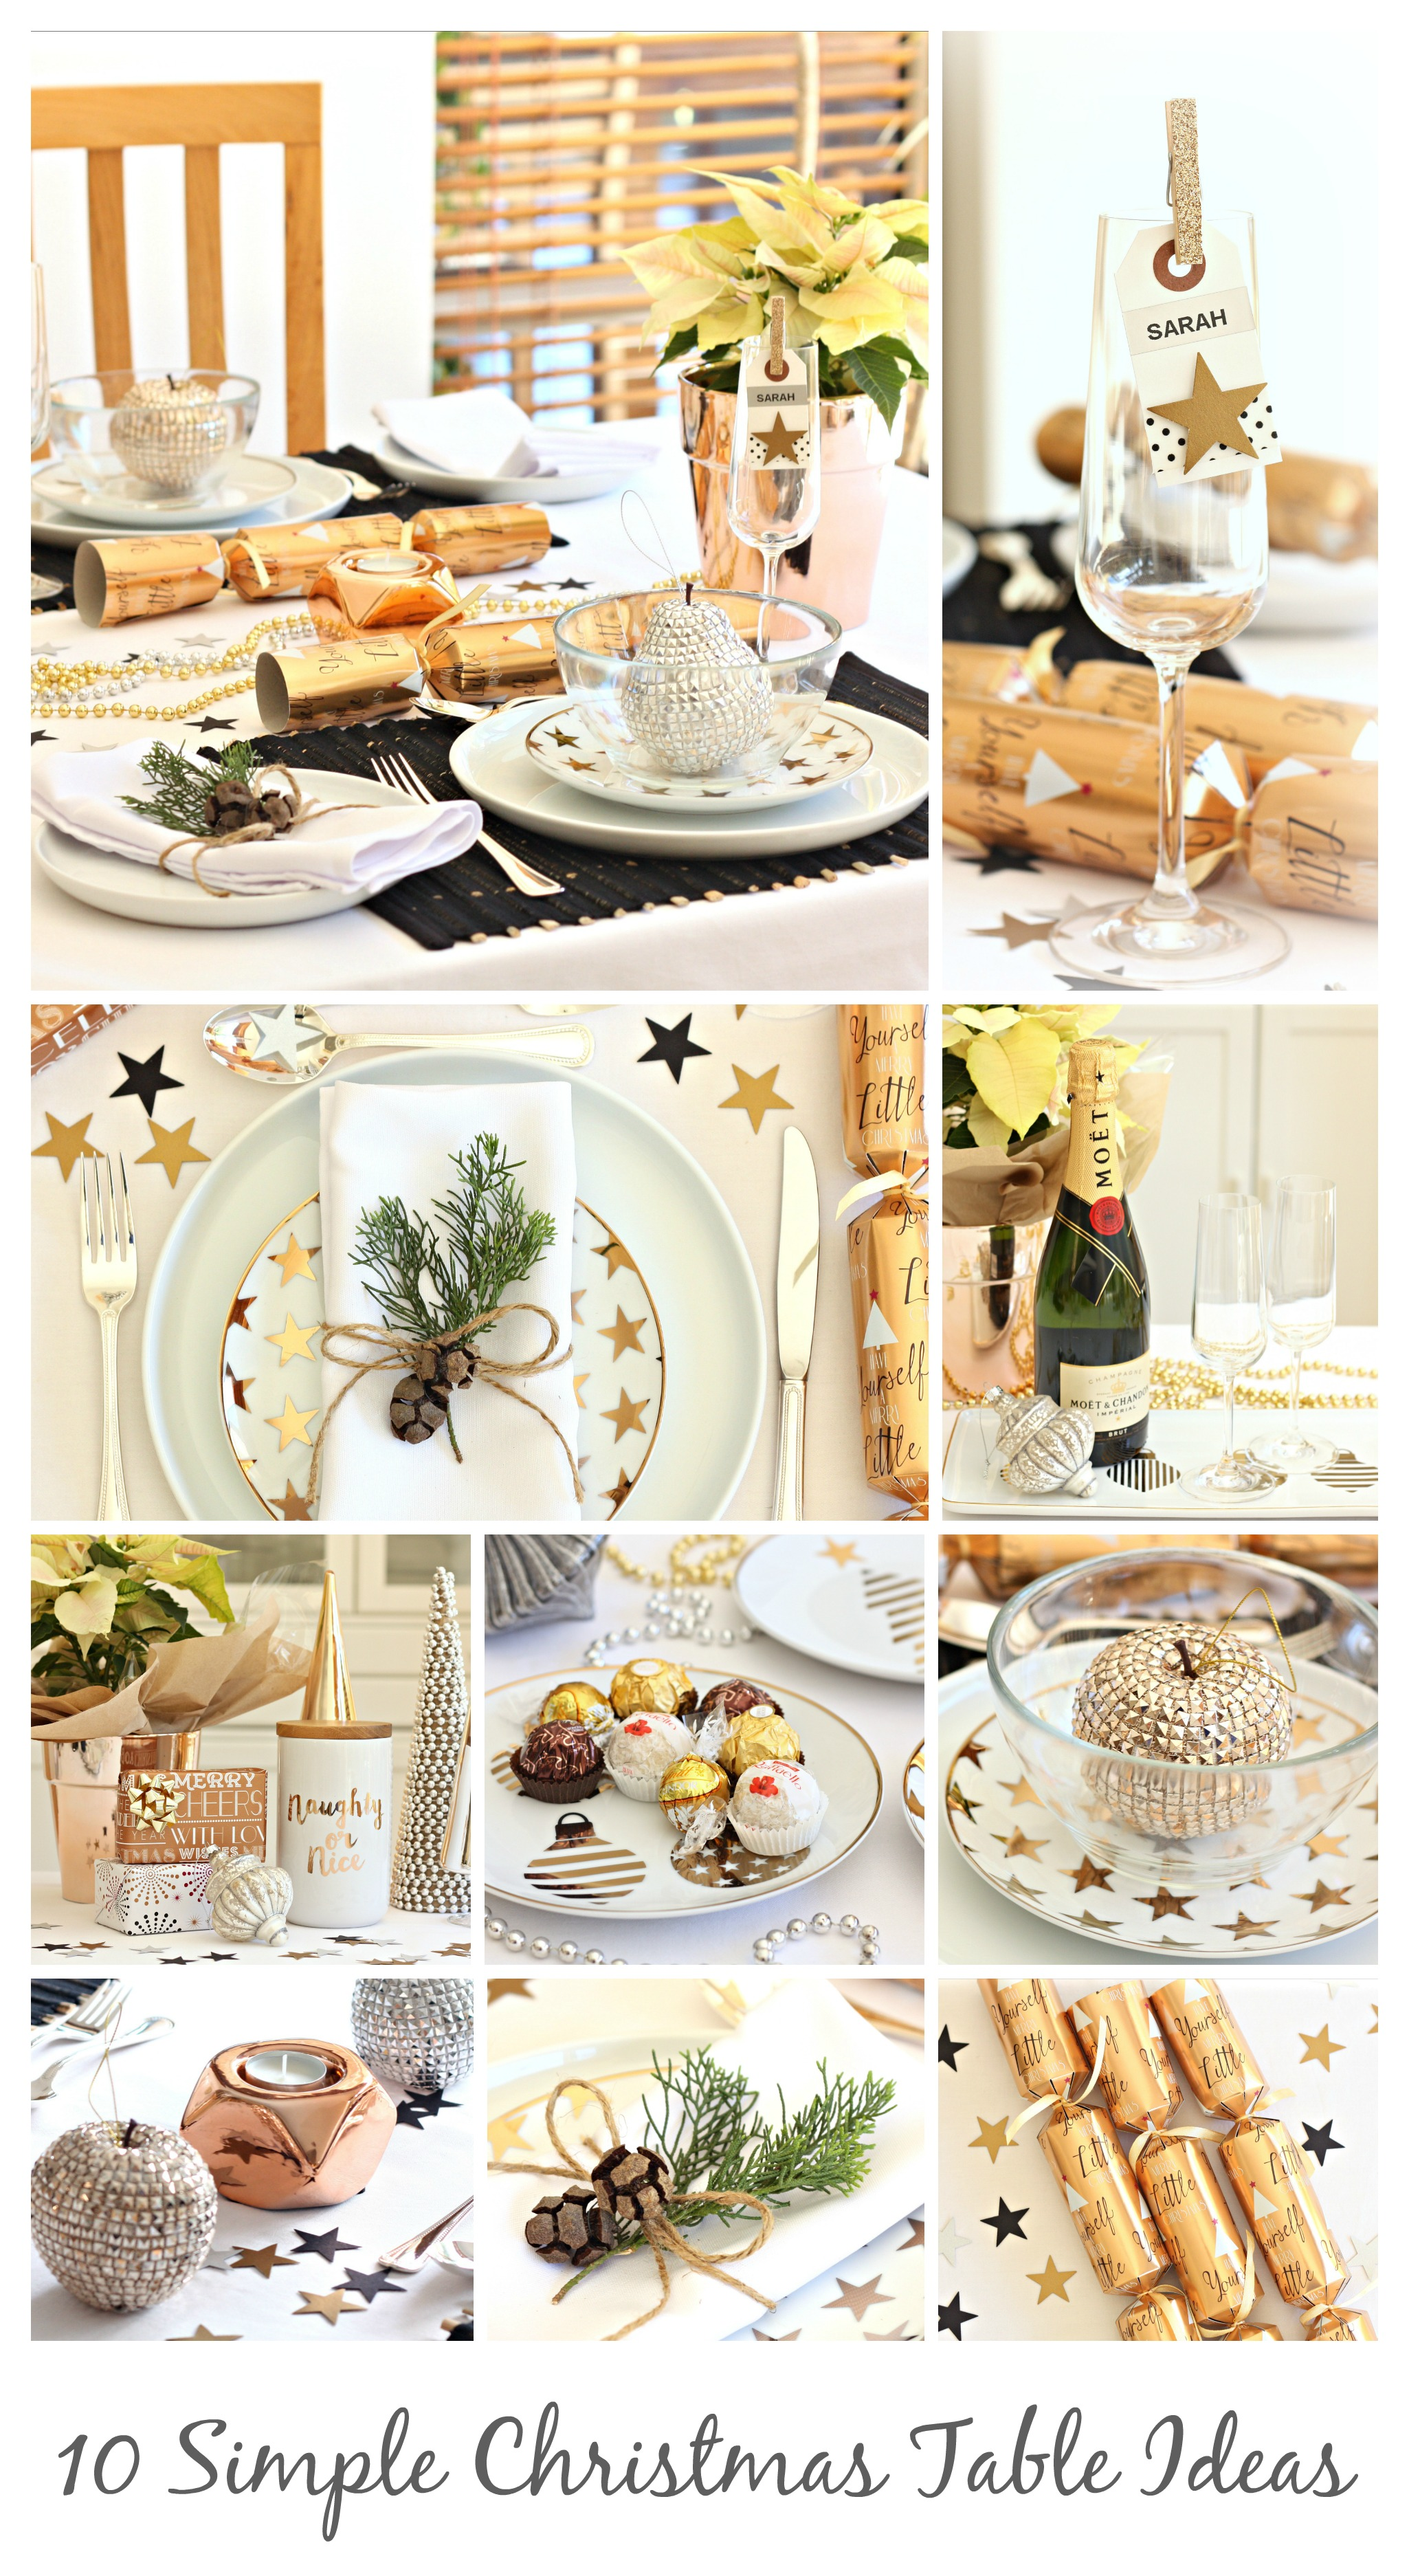 10 simple christmas table ideas a spoonful of sugar for Simple christmas table decorations